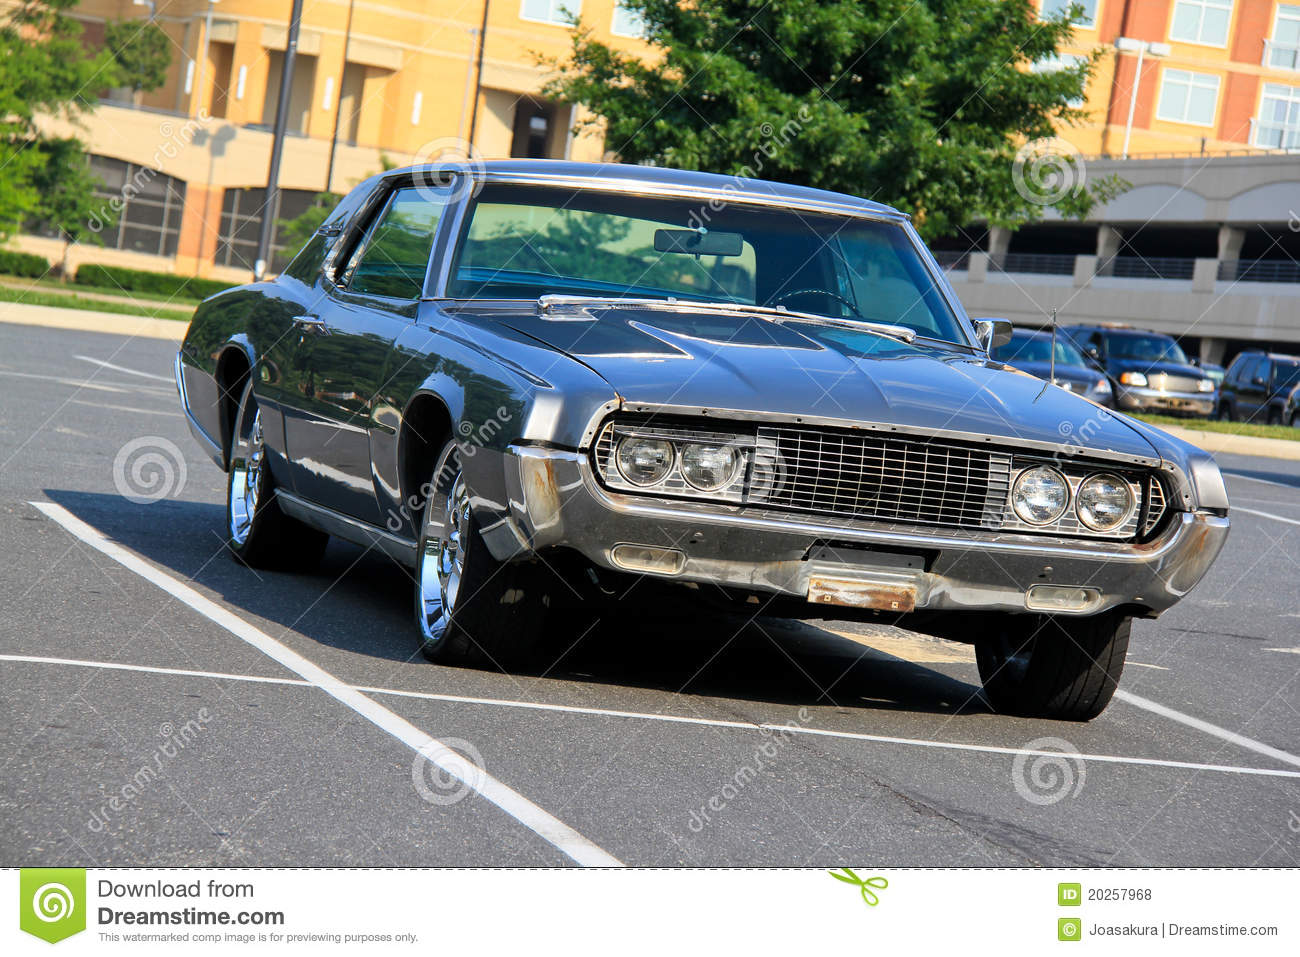 Old Fashioned Car stock photo. Image of film, parking - 20257968